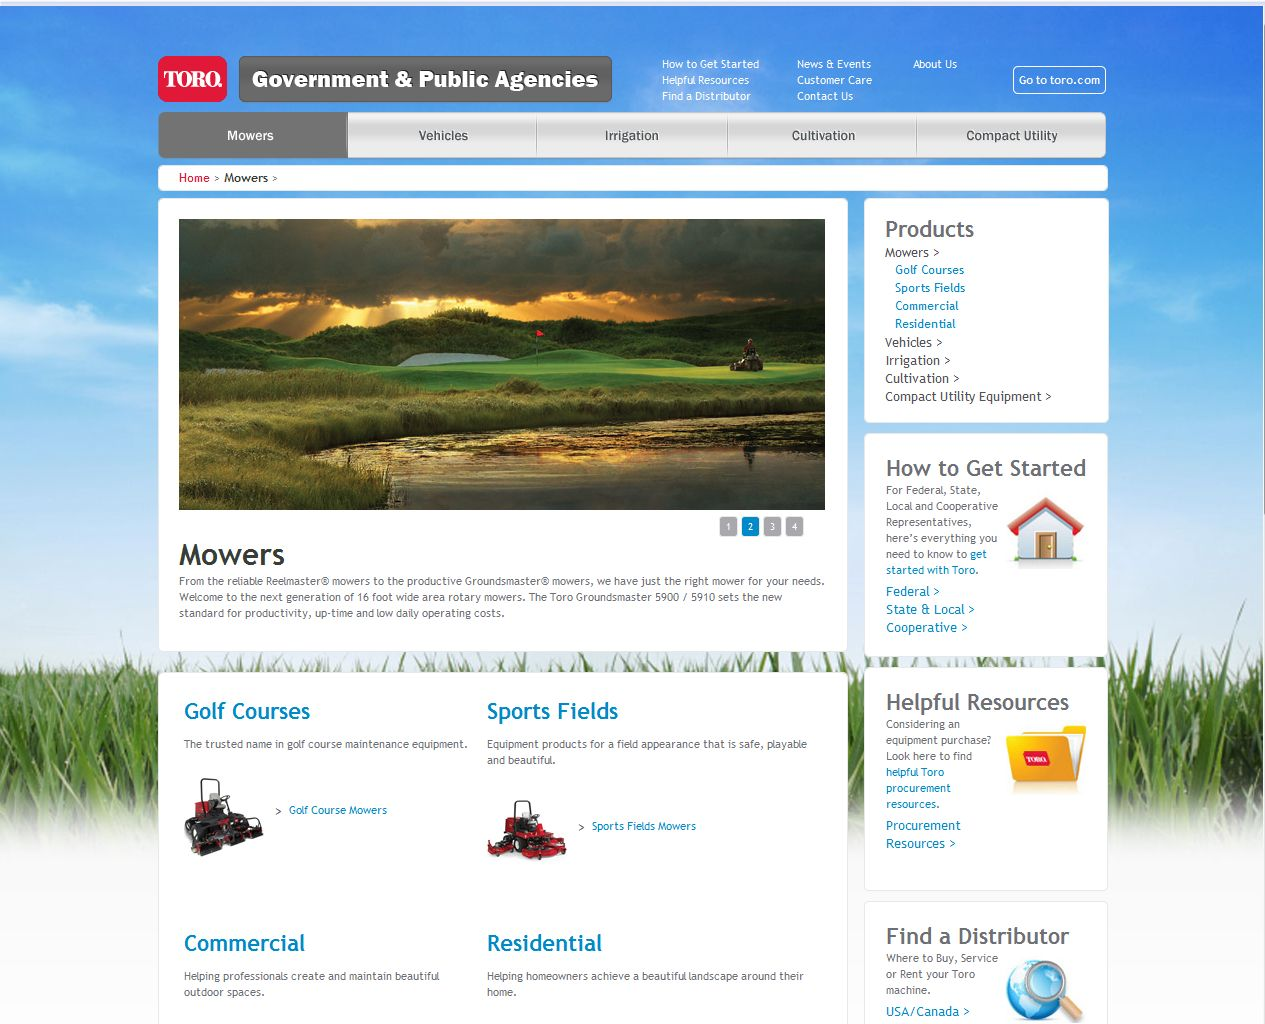 Toro Launches New Website for Government and Public Agencies